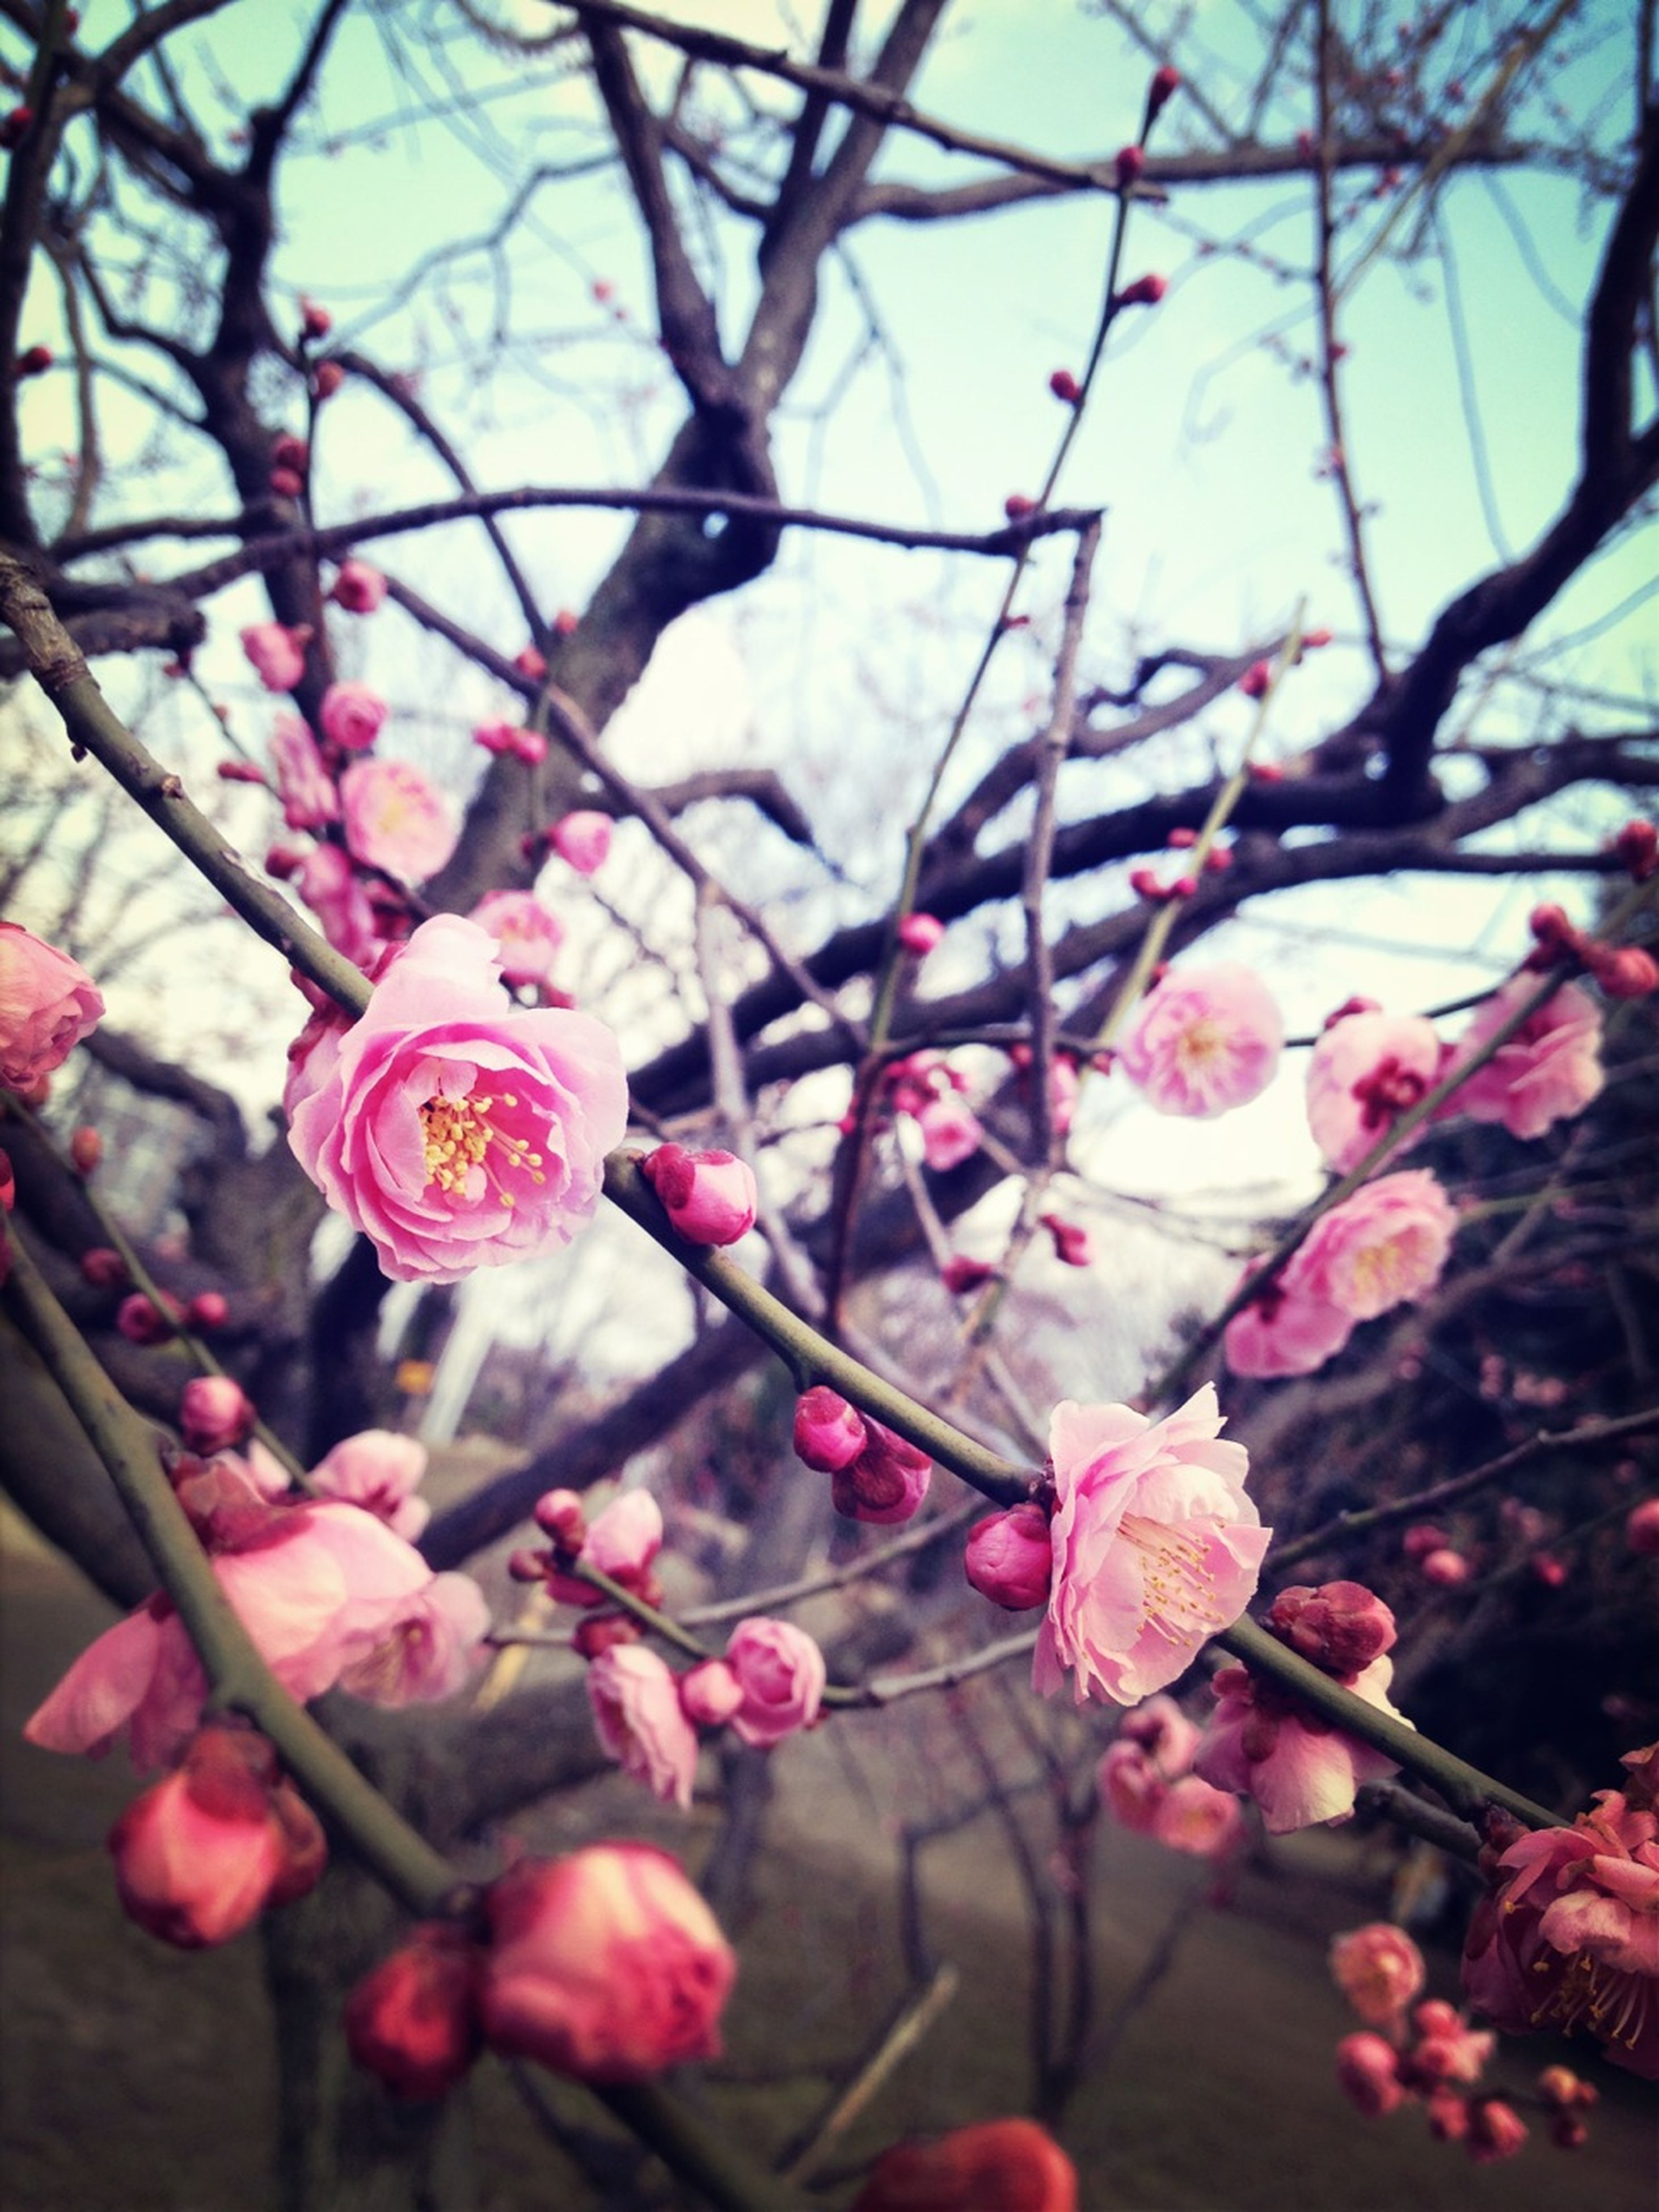 flower, branch, growth, tree, freshness, fragility, focus on foreground, pink color, nature, twig, beauty in nature, close-up, cherry blossom, blossom, cherry tree, low angle view, petal, in bloom, blooming, day